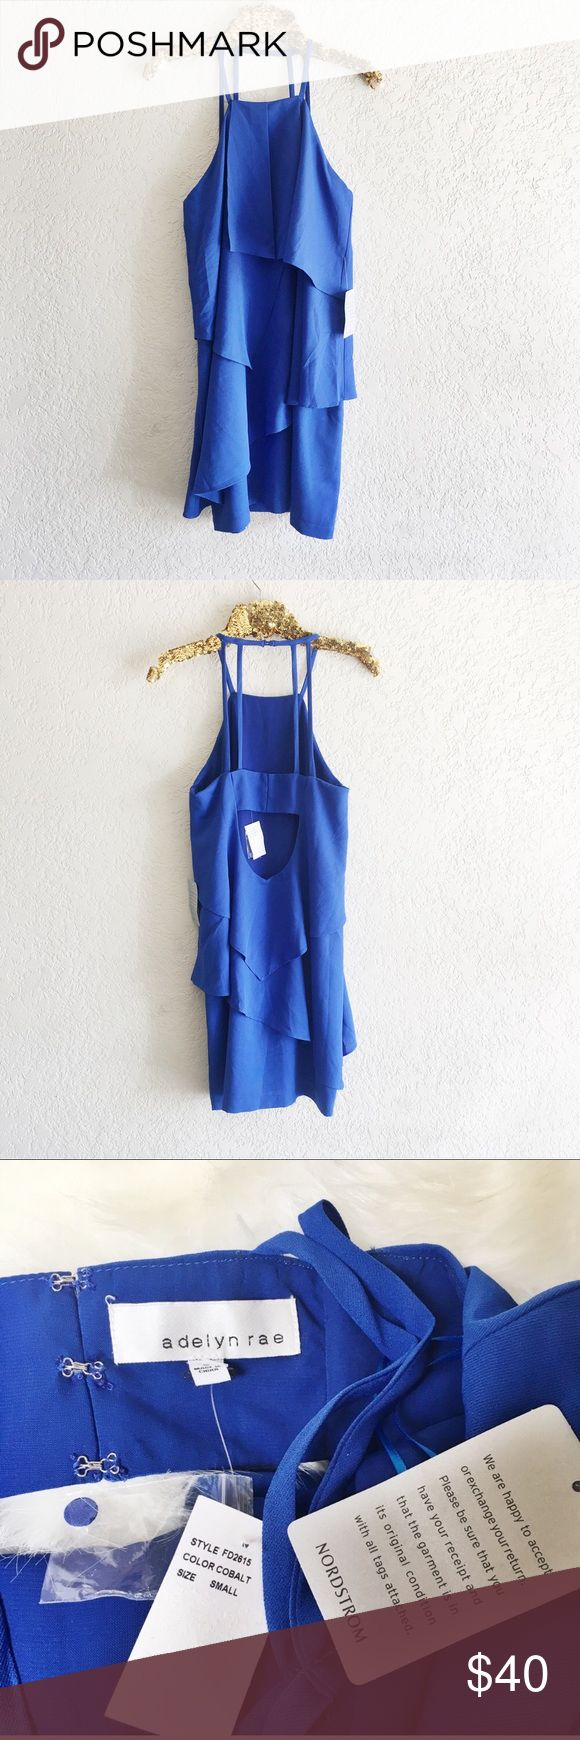 Adelyn Rae Strappy Cobalt Blue Overlay Dress Brand new with tags! Halter style. Sleeveless. Lined. Size small. From Nordstrom. Adelyn Rae Dresses Mini